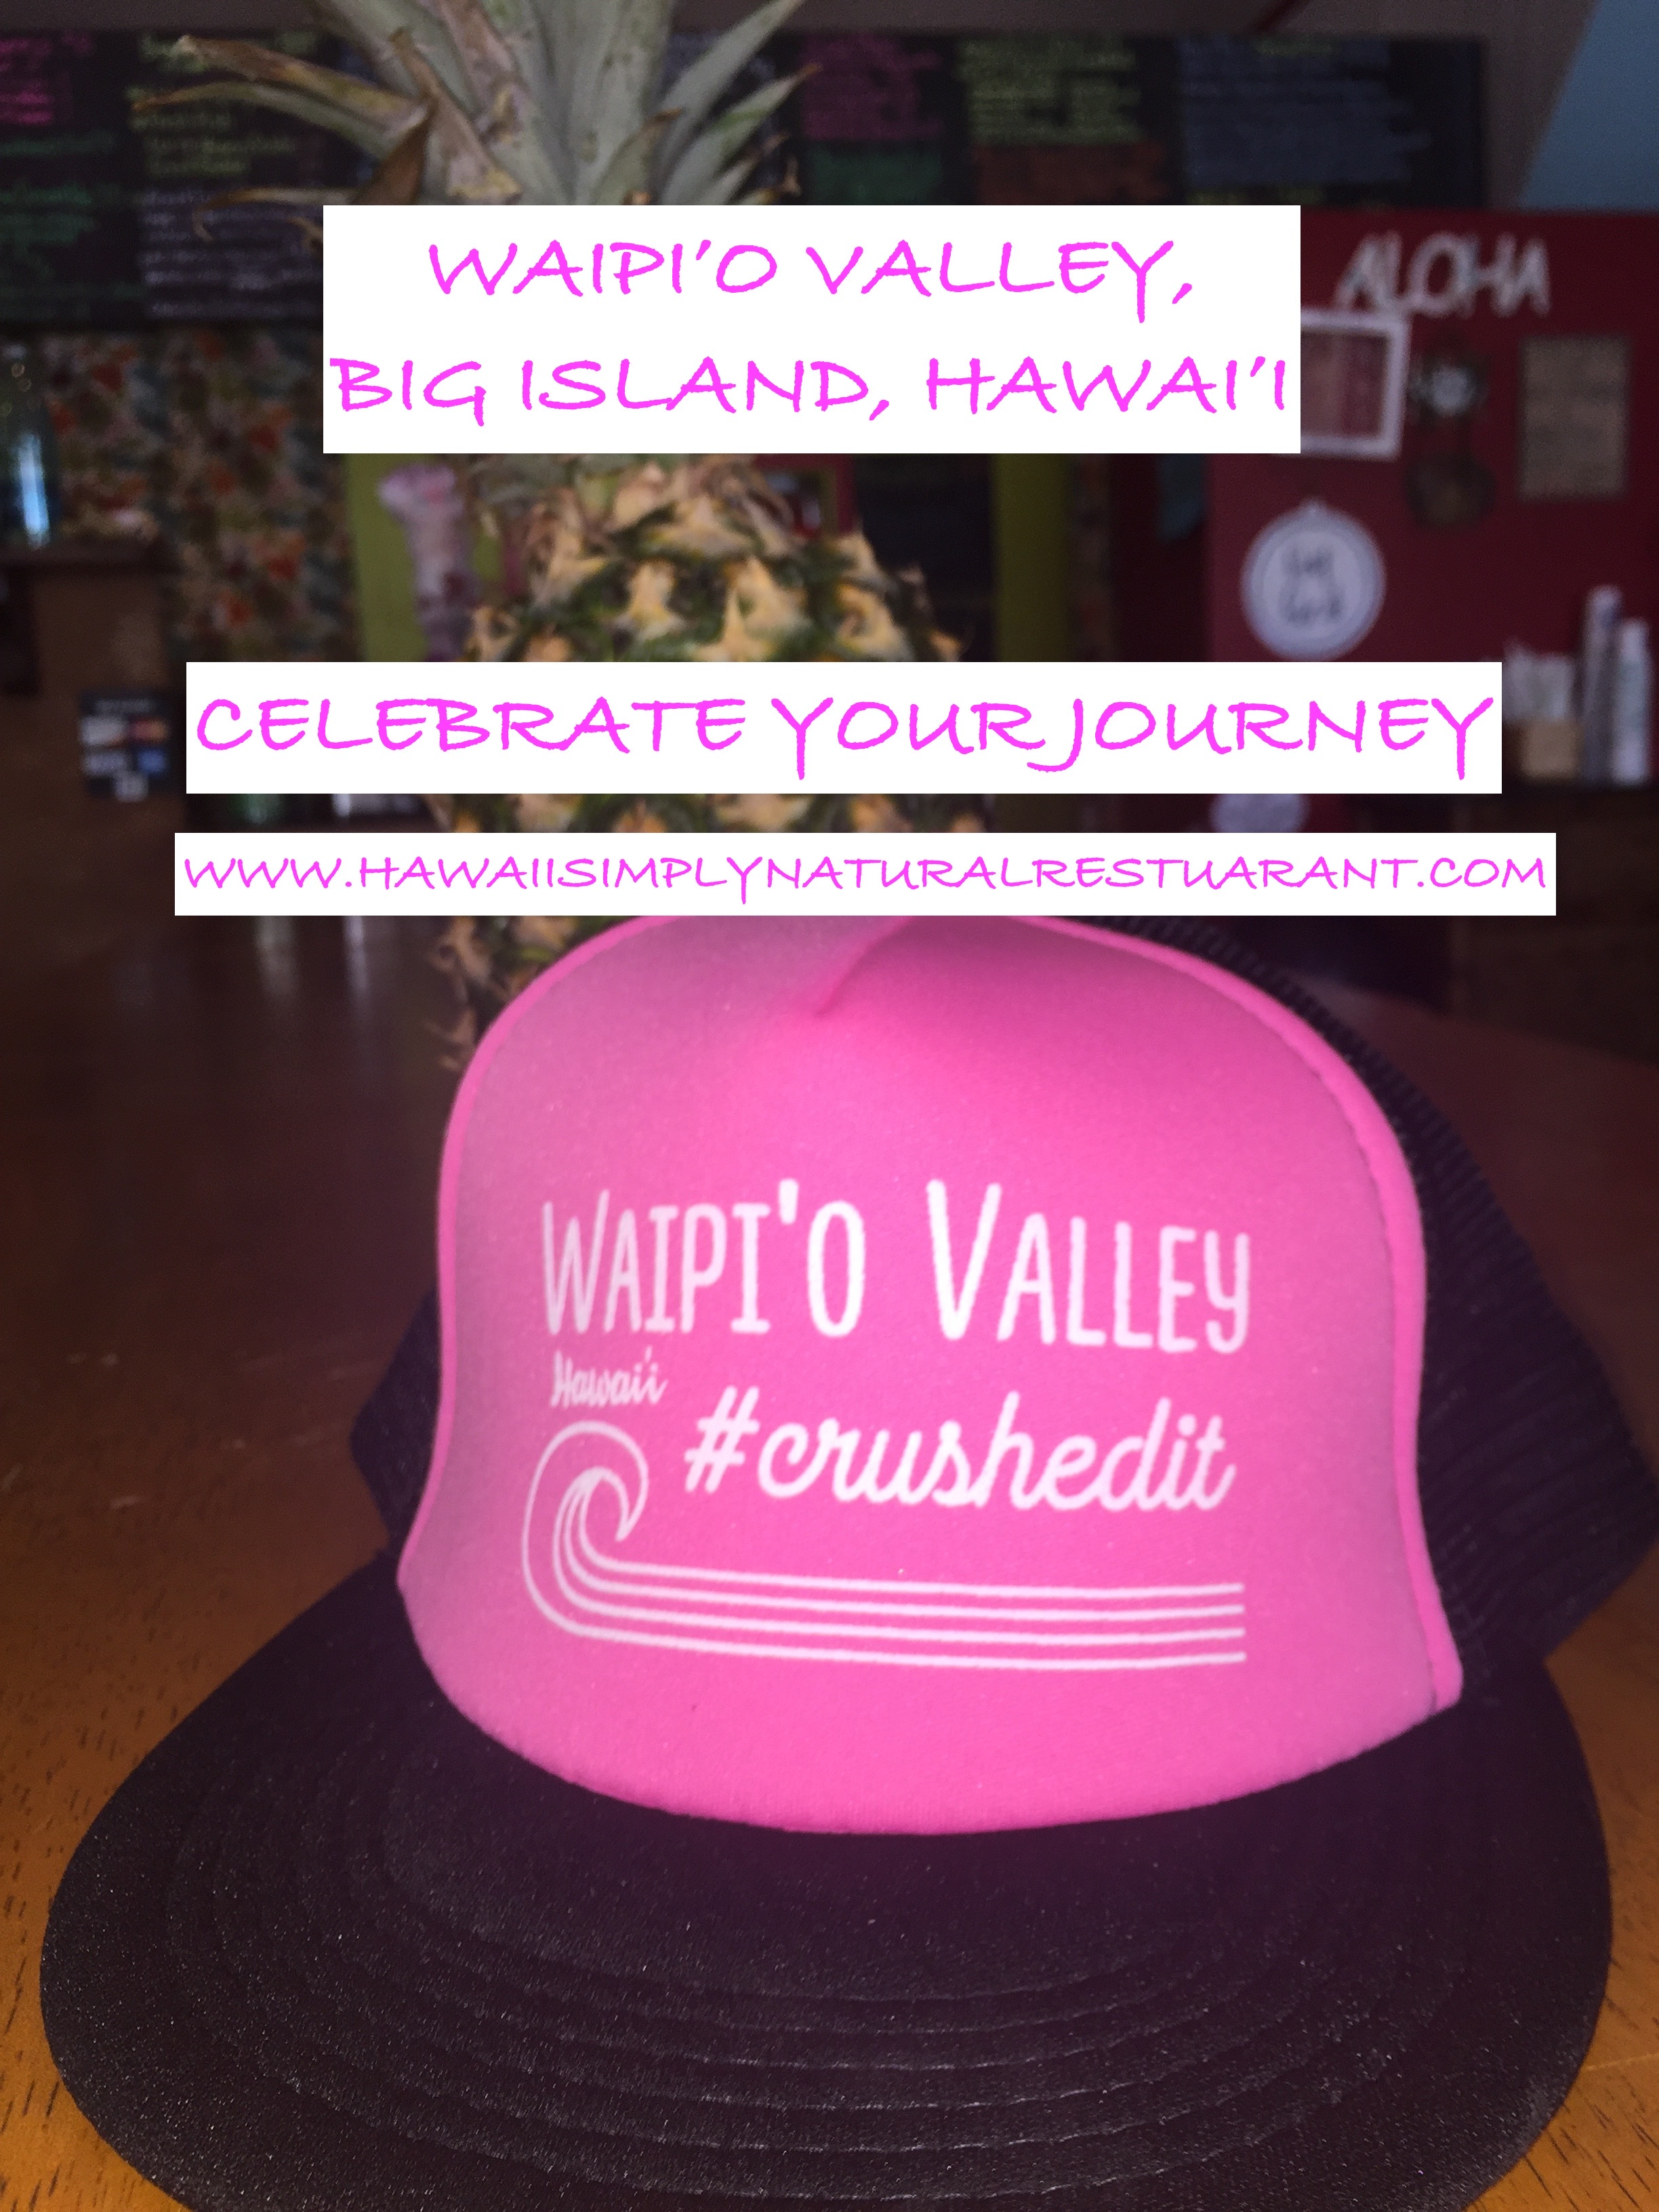 #CRUSHEDIT HAWAI'I TRUCKER HATS. CELEBRATE YOUR JOURNEY.